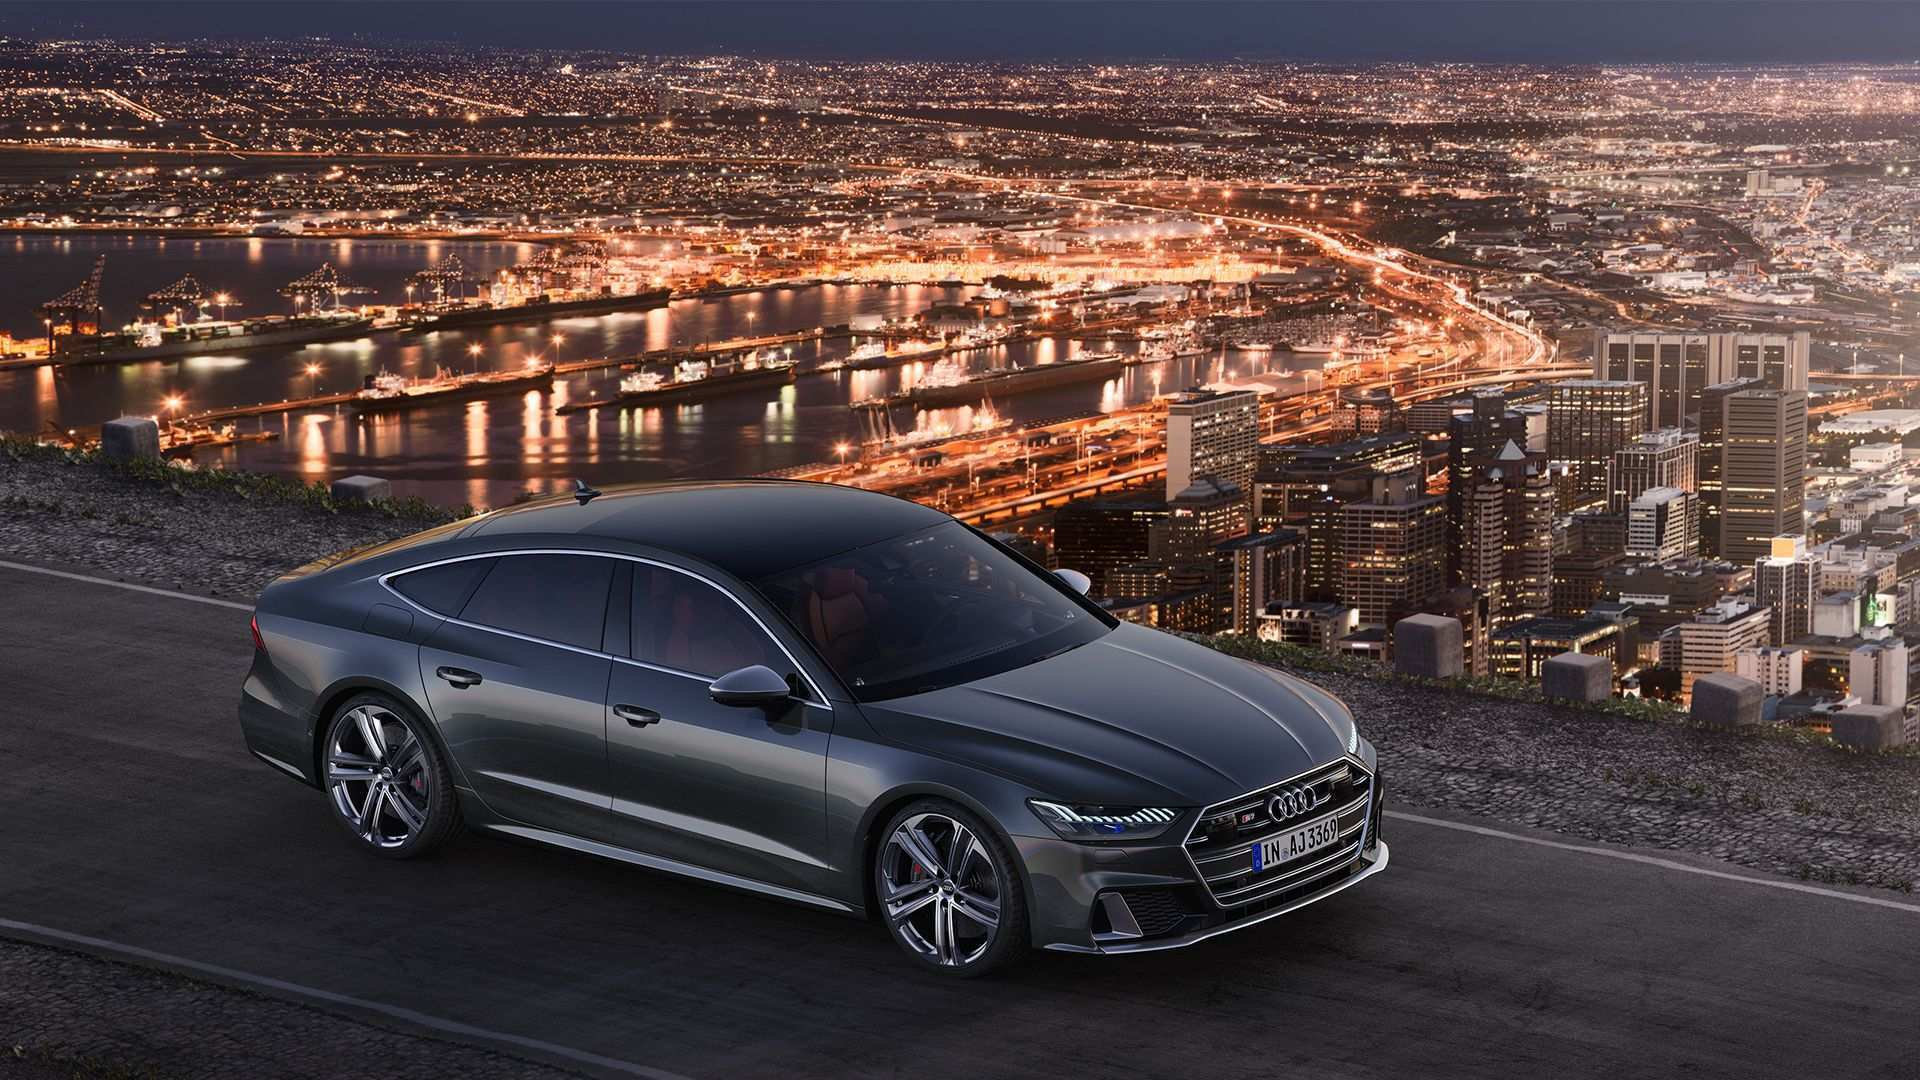 57 All New 2020 Audi S7 Price And Review